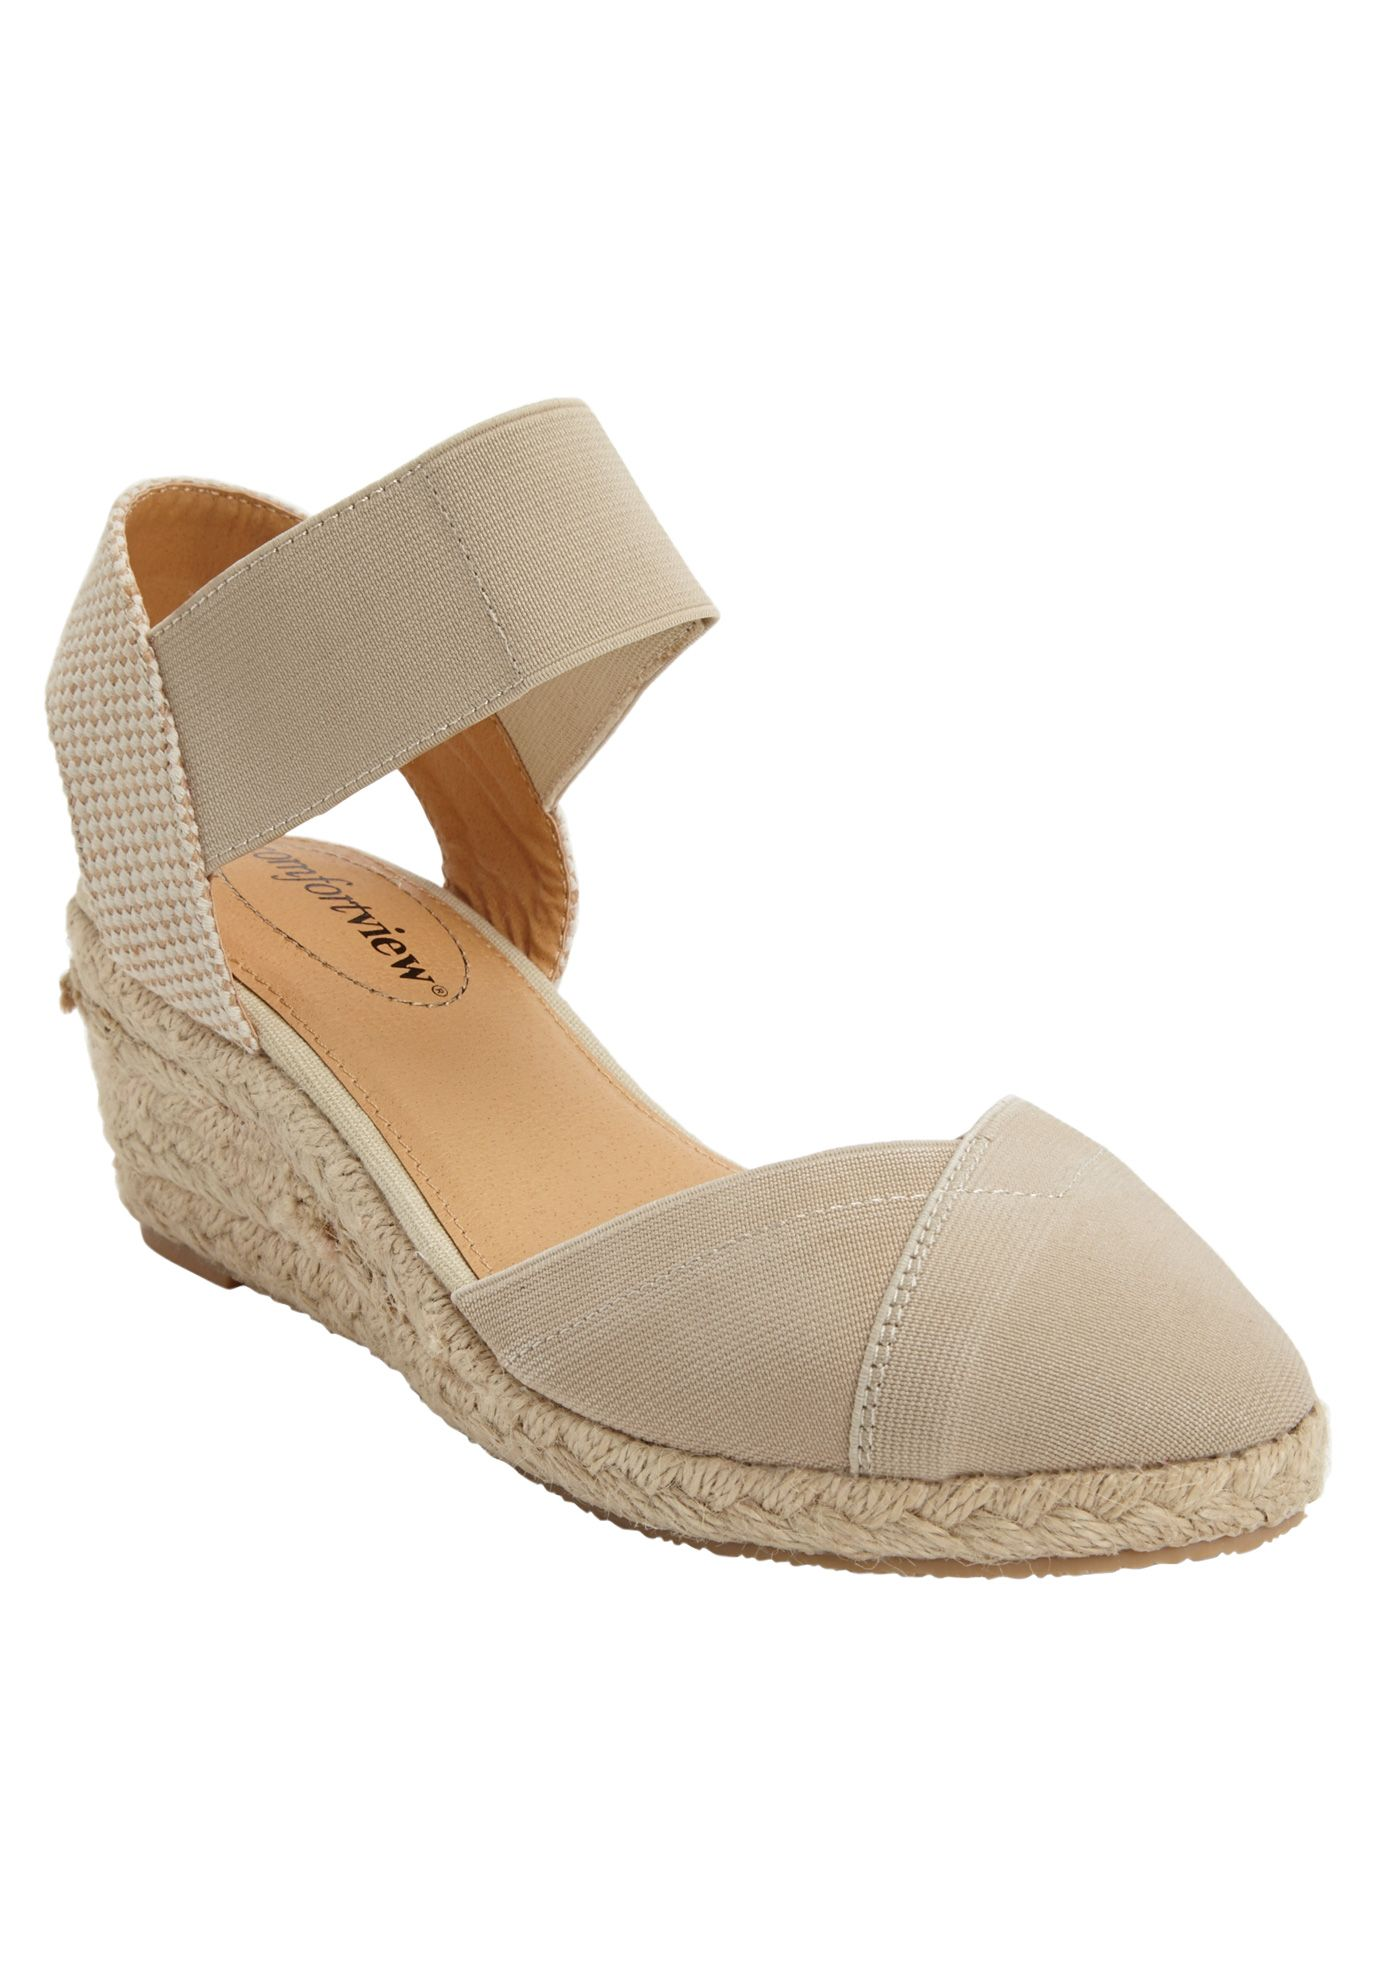 8dd94be45cf0 This espadrille with an elastic upper and ankle strap is comfortable and  supportive